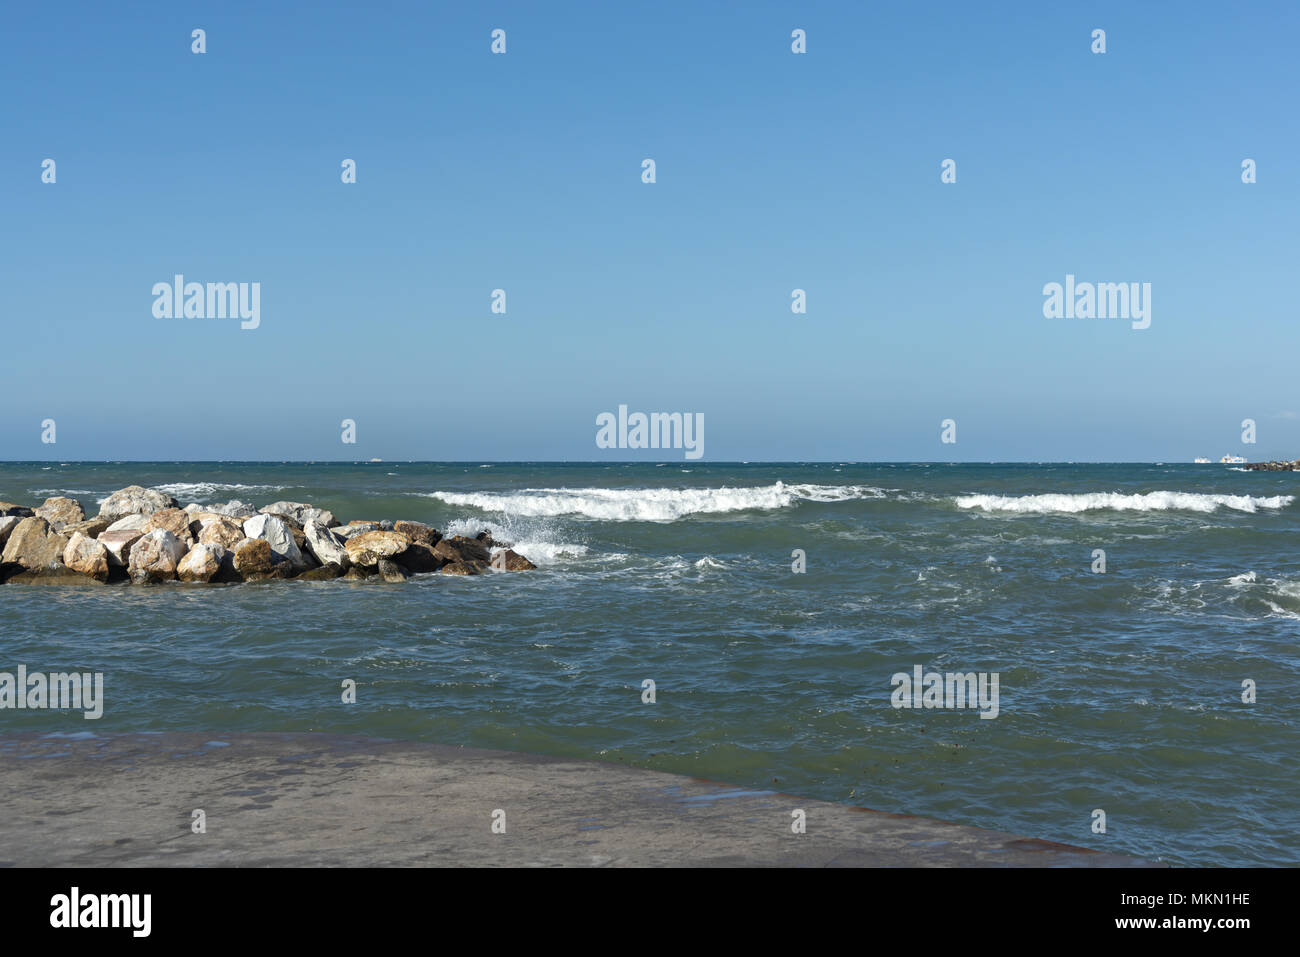 Europe Italy Tuscany Livorno Terrazza a Mare 26 Stock Photo ...